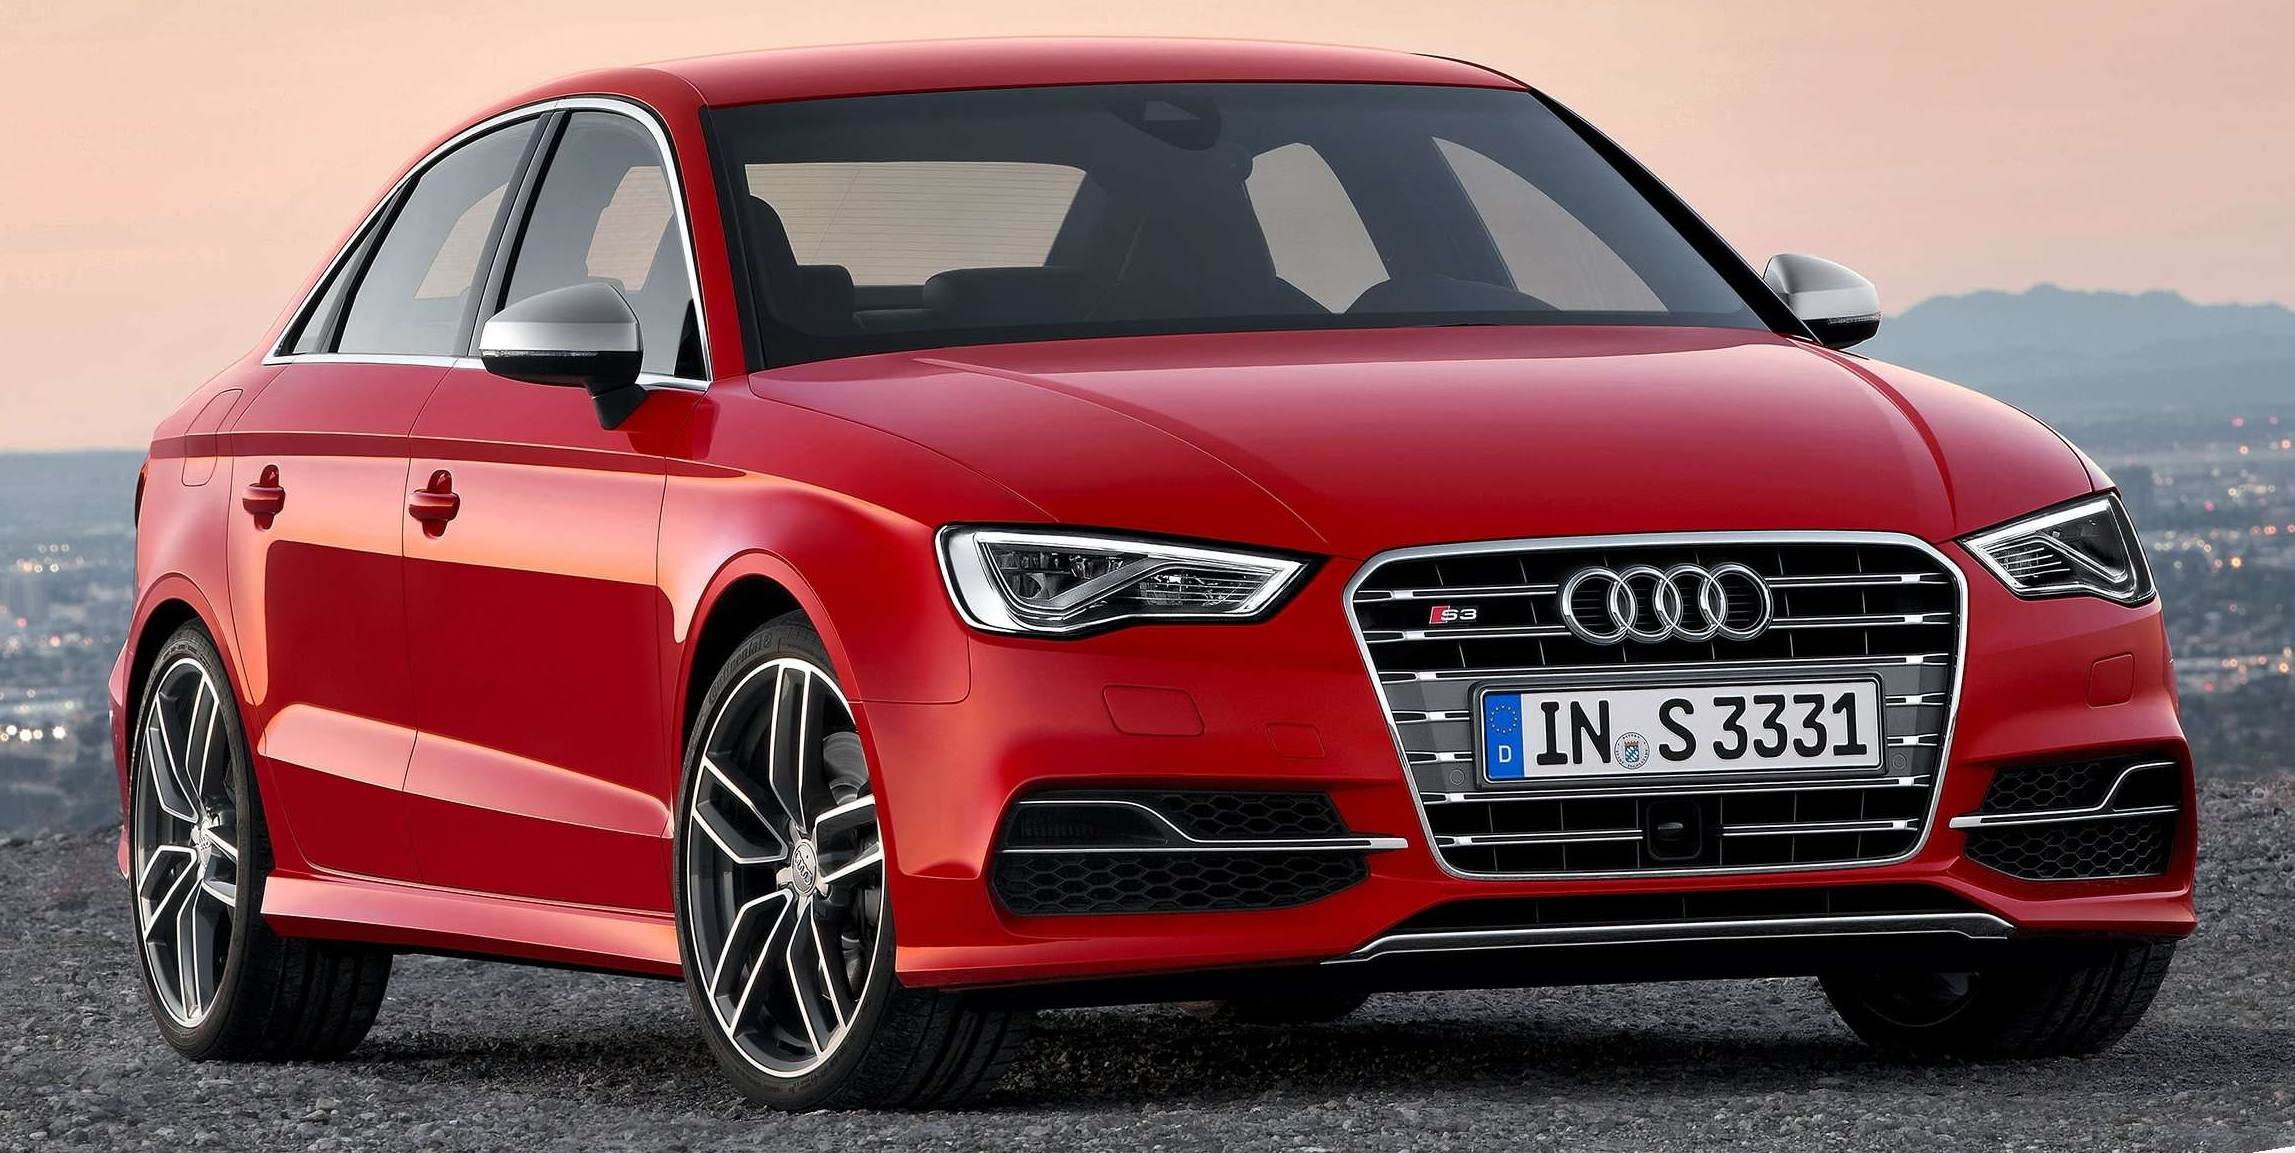 Audi S Model Car Price In Pakistan Images Reviews Specs - Audi car 2015 price